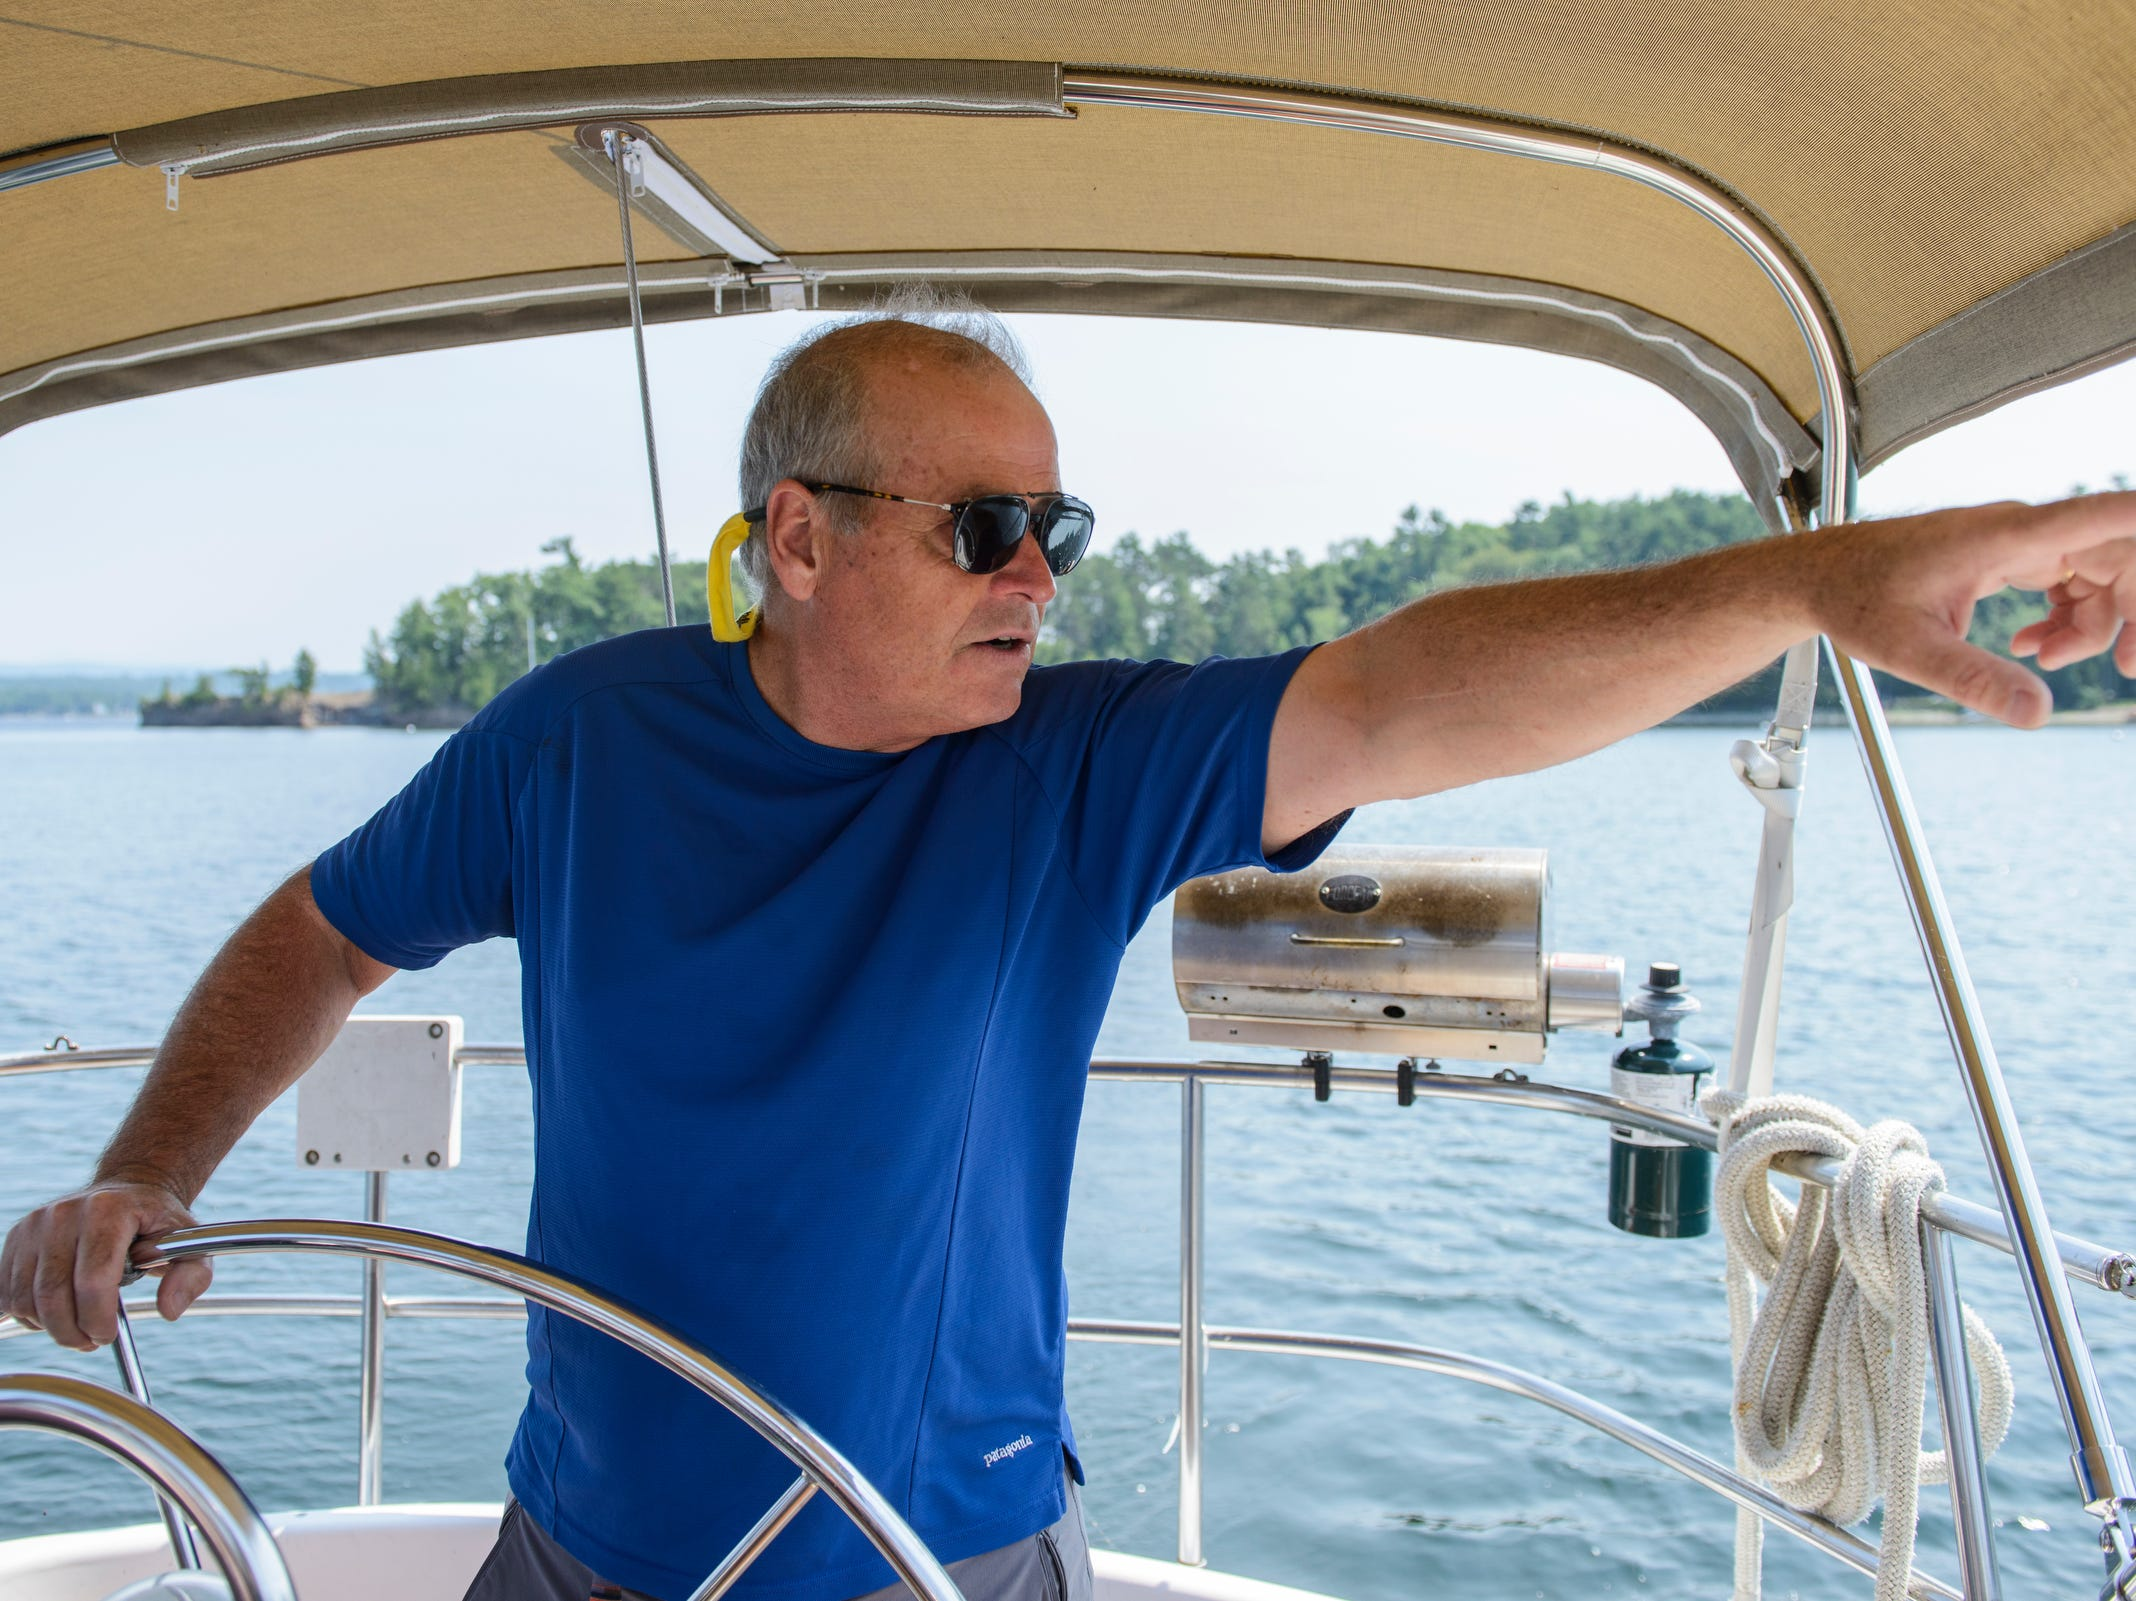 Real Estate agent Chris Von Trapp points to a house during a tour of the waterfront real estate along the shores of Lake Champlain on Friday afternoon August 24, 2018 in Shelburne Bay.